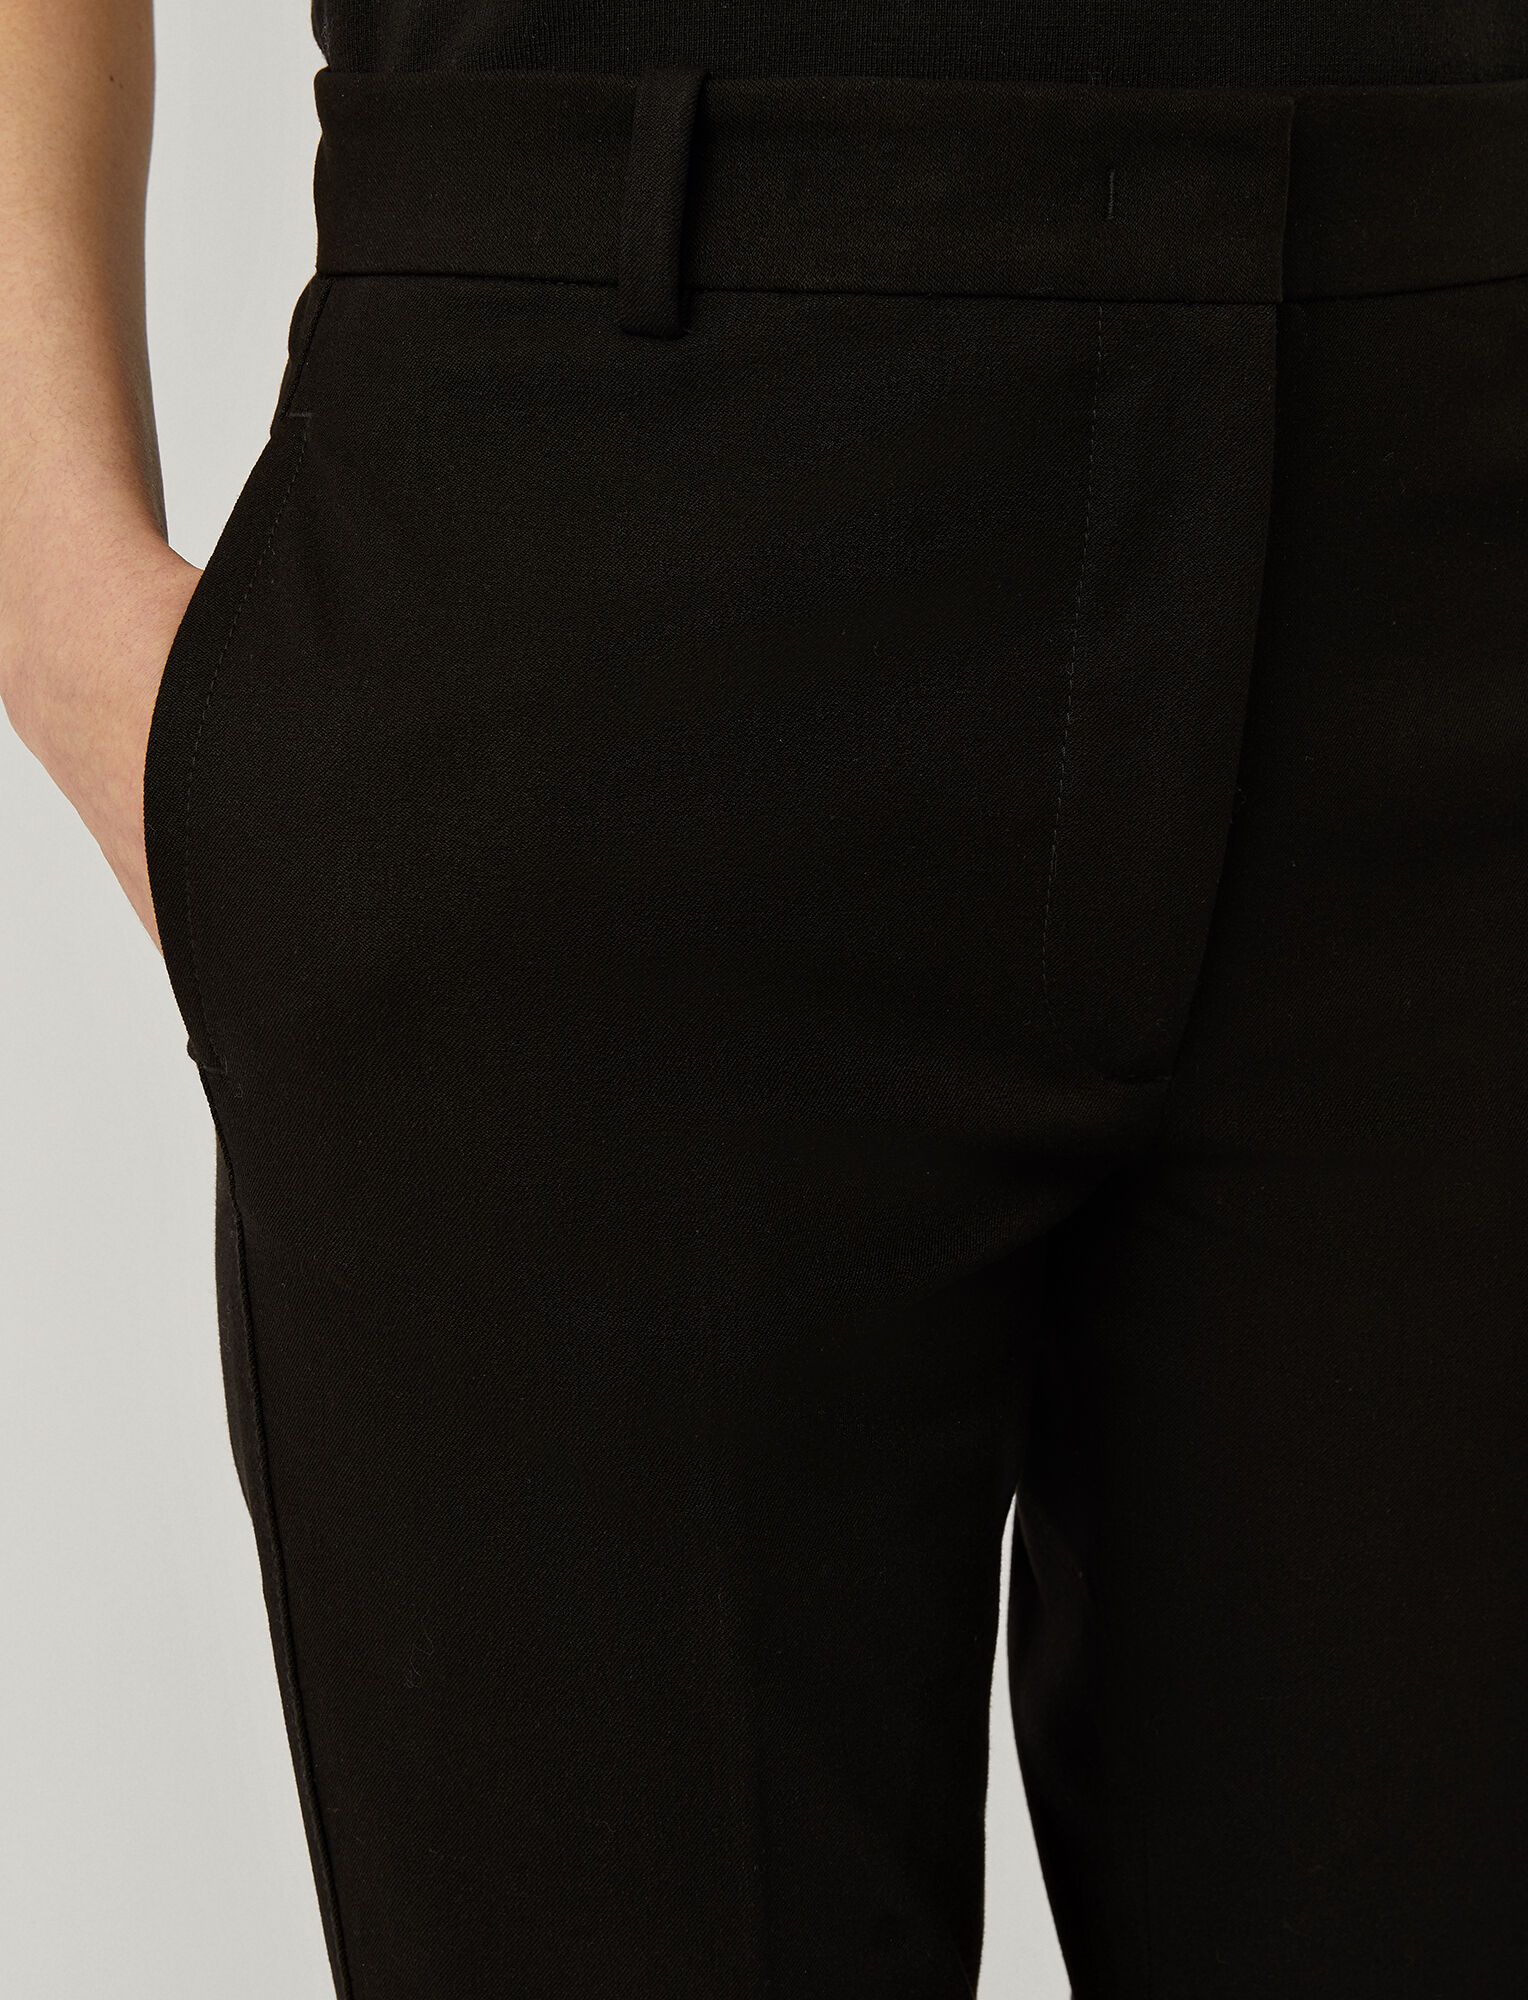 Joseph, Pantalon Zoom en gabardine stretch, in BLACK